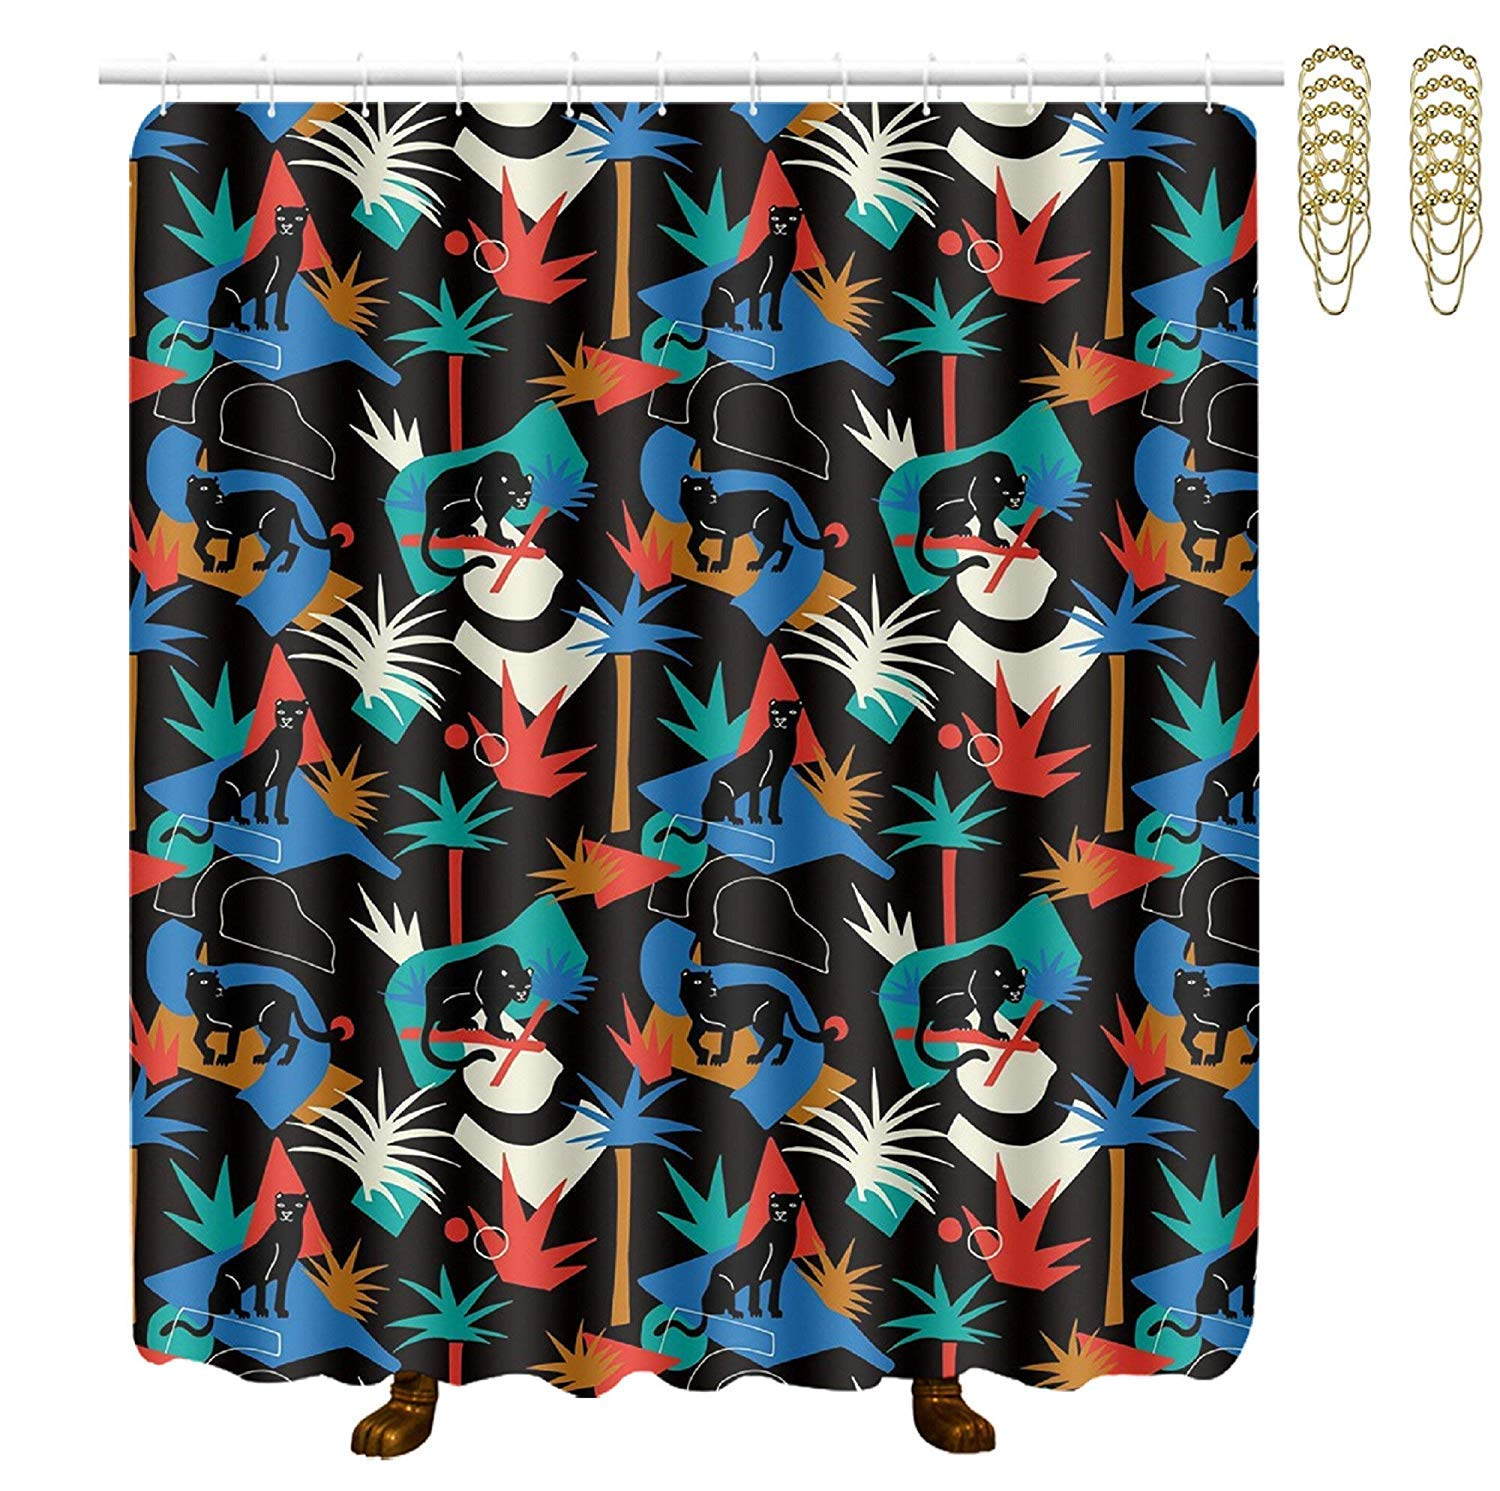 COVASA Decorative Water Repellant Shower Curtain 72x72 Inches Comes with 12 Hooks (Black Panther in The Jungle Wild Animals)